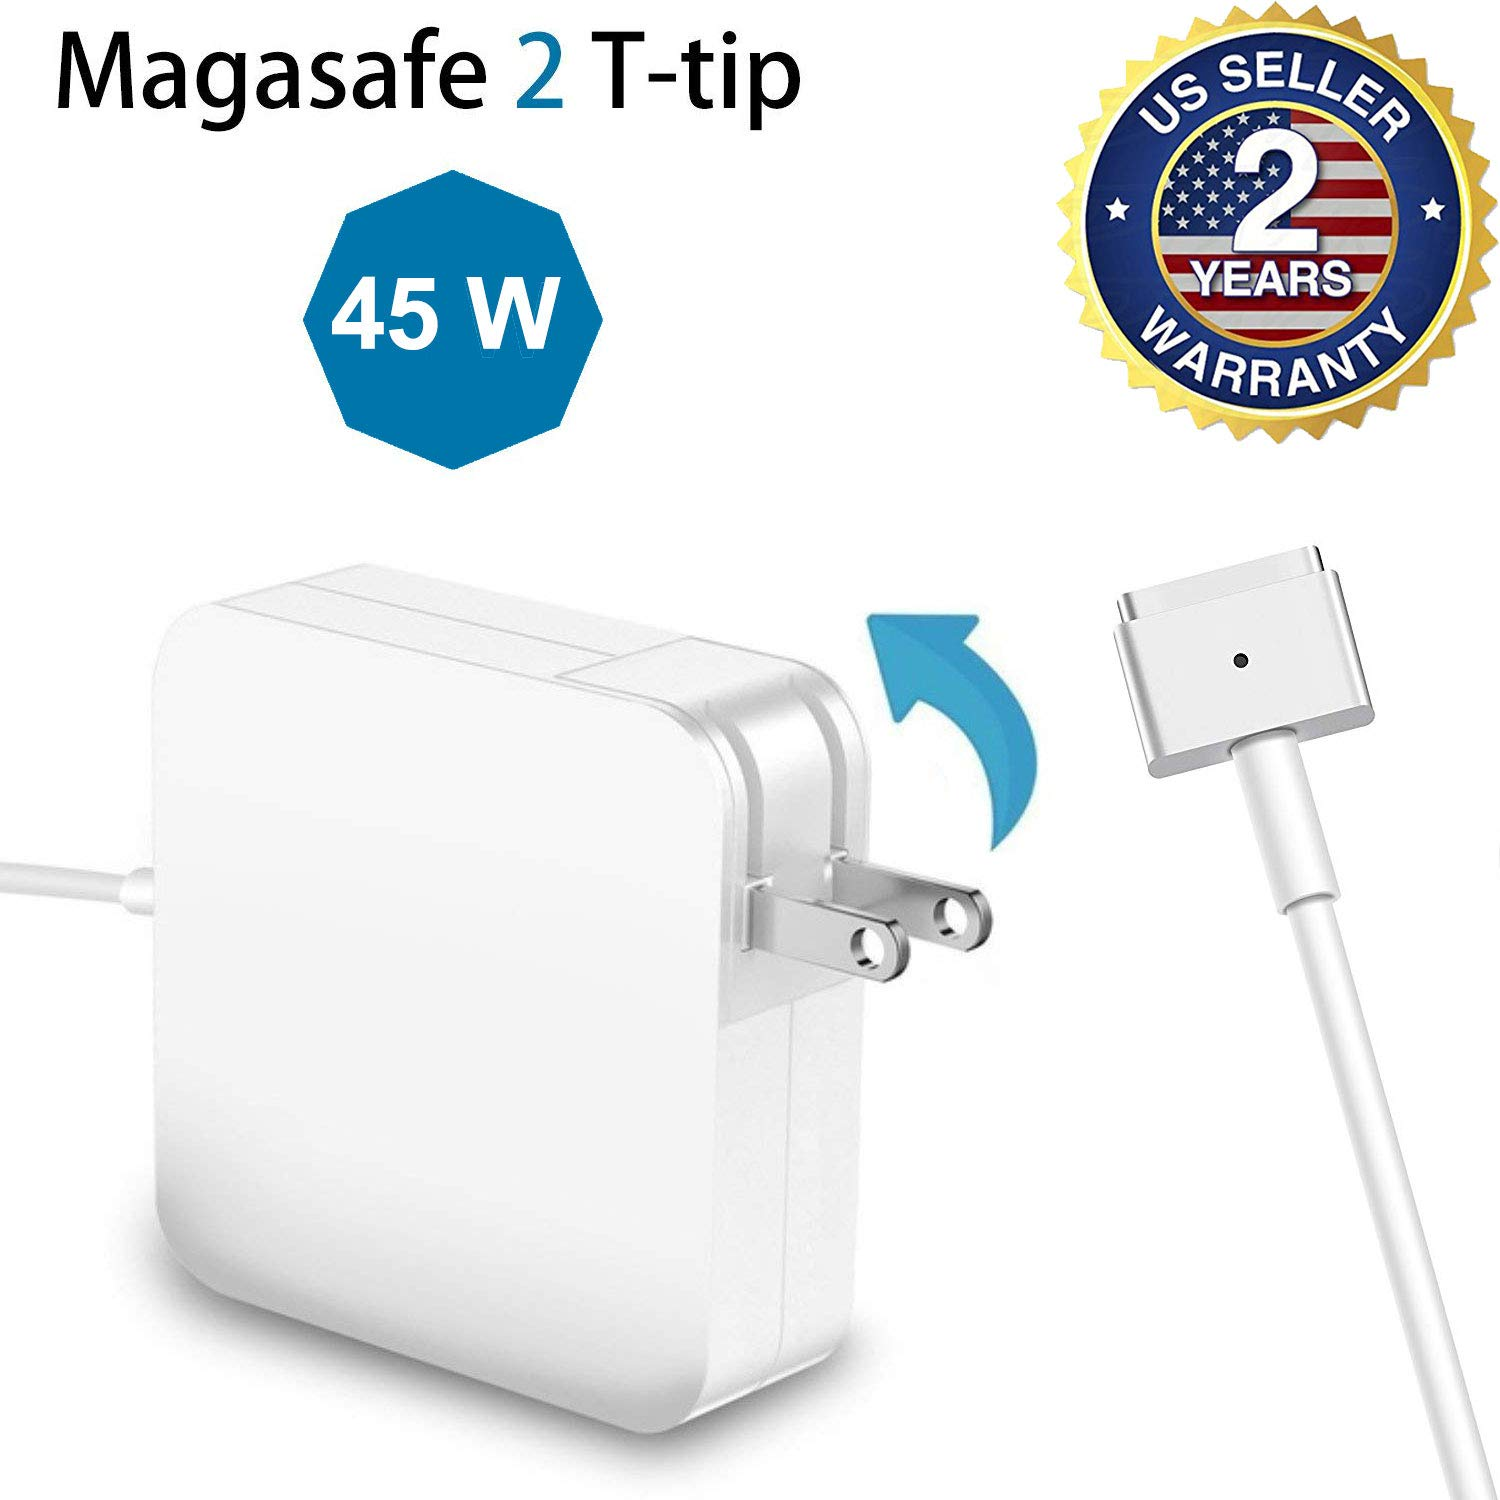 TrophyRak for MacBook Air Charger 45W MagSafe 2 T-Tip Adapter Charger for MacBook Air 11-inch and 13-inch After Mid 2012 by TrophyRak (Image #1)